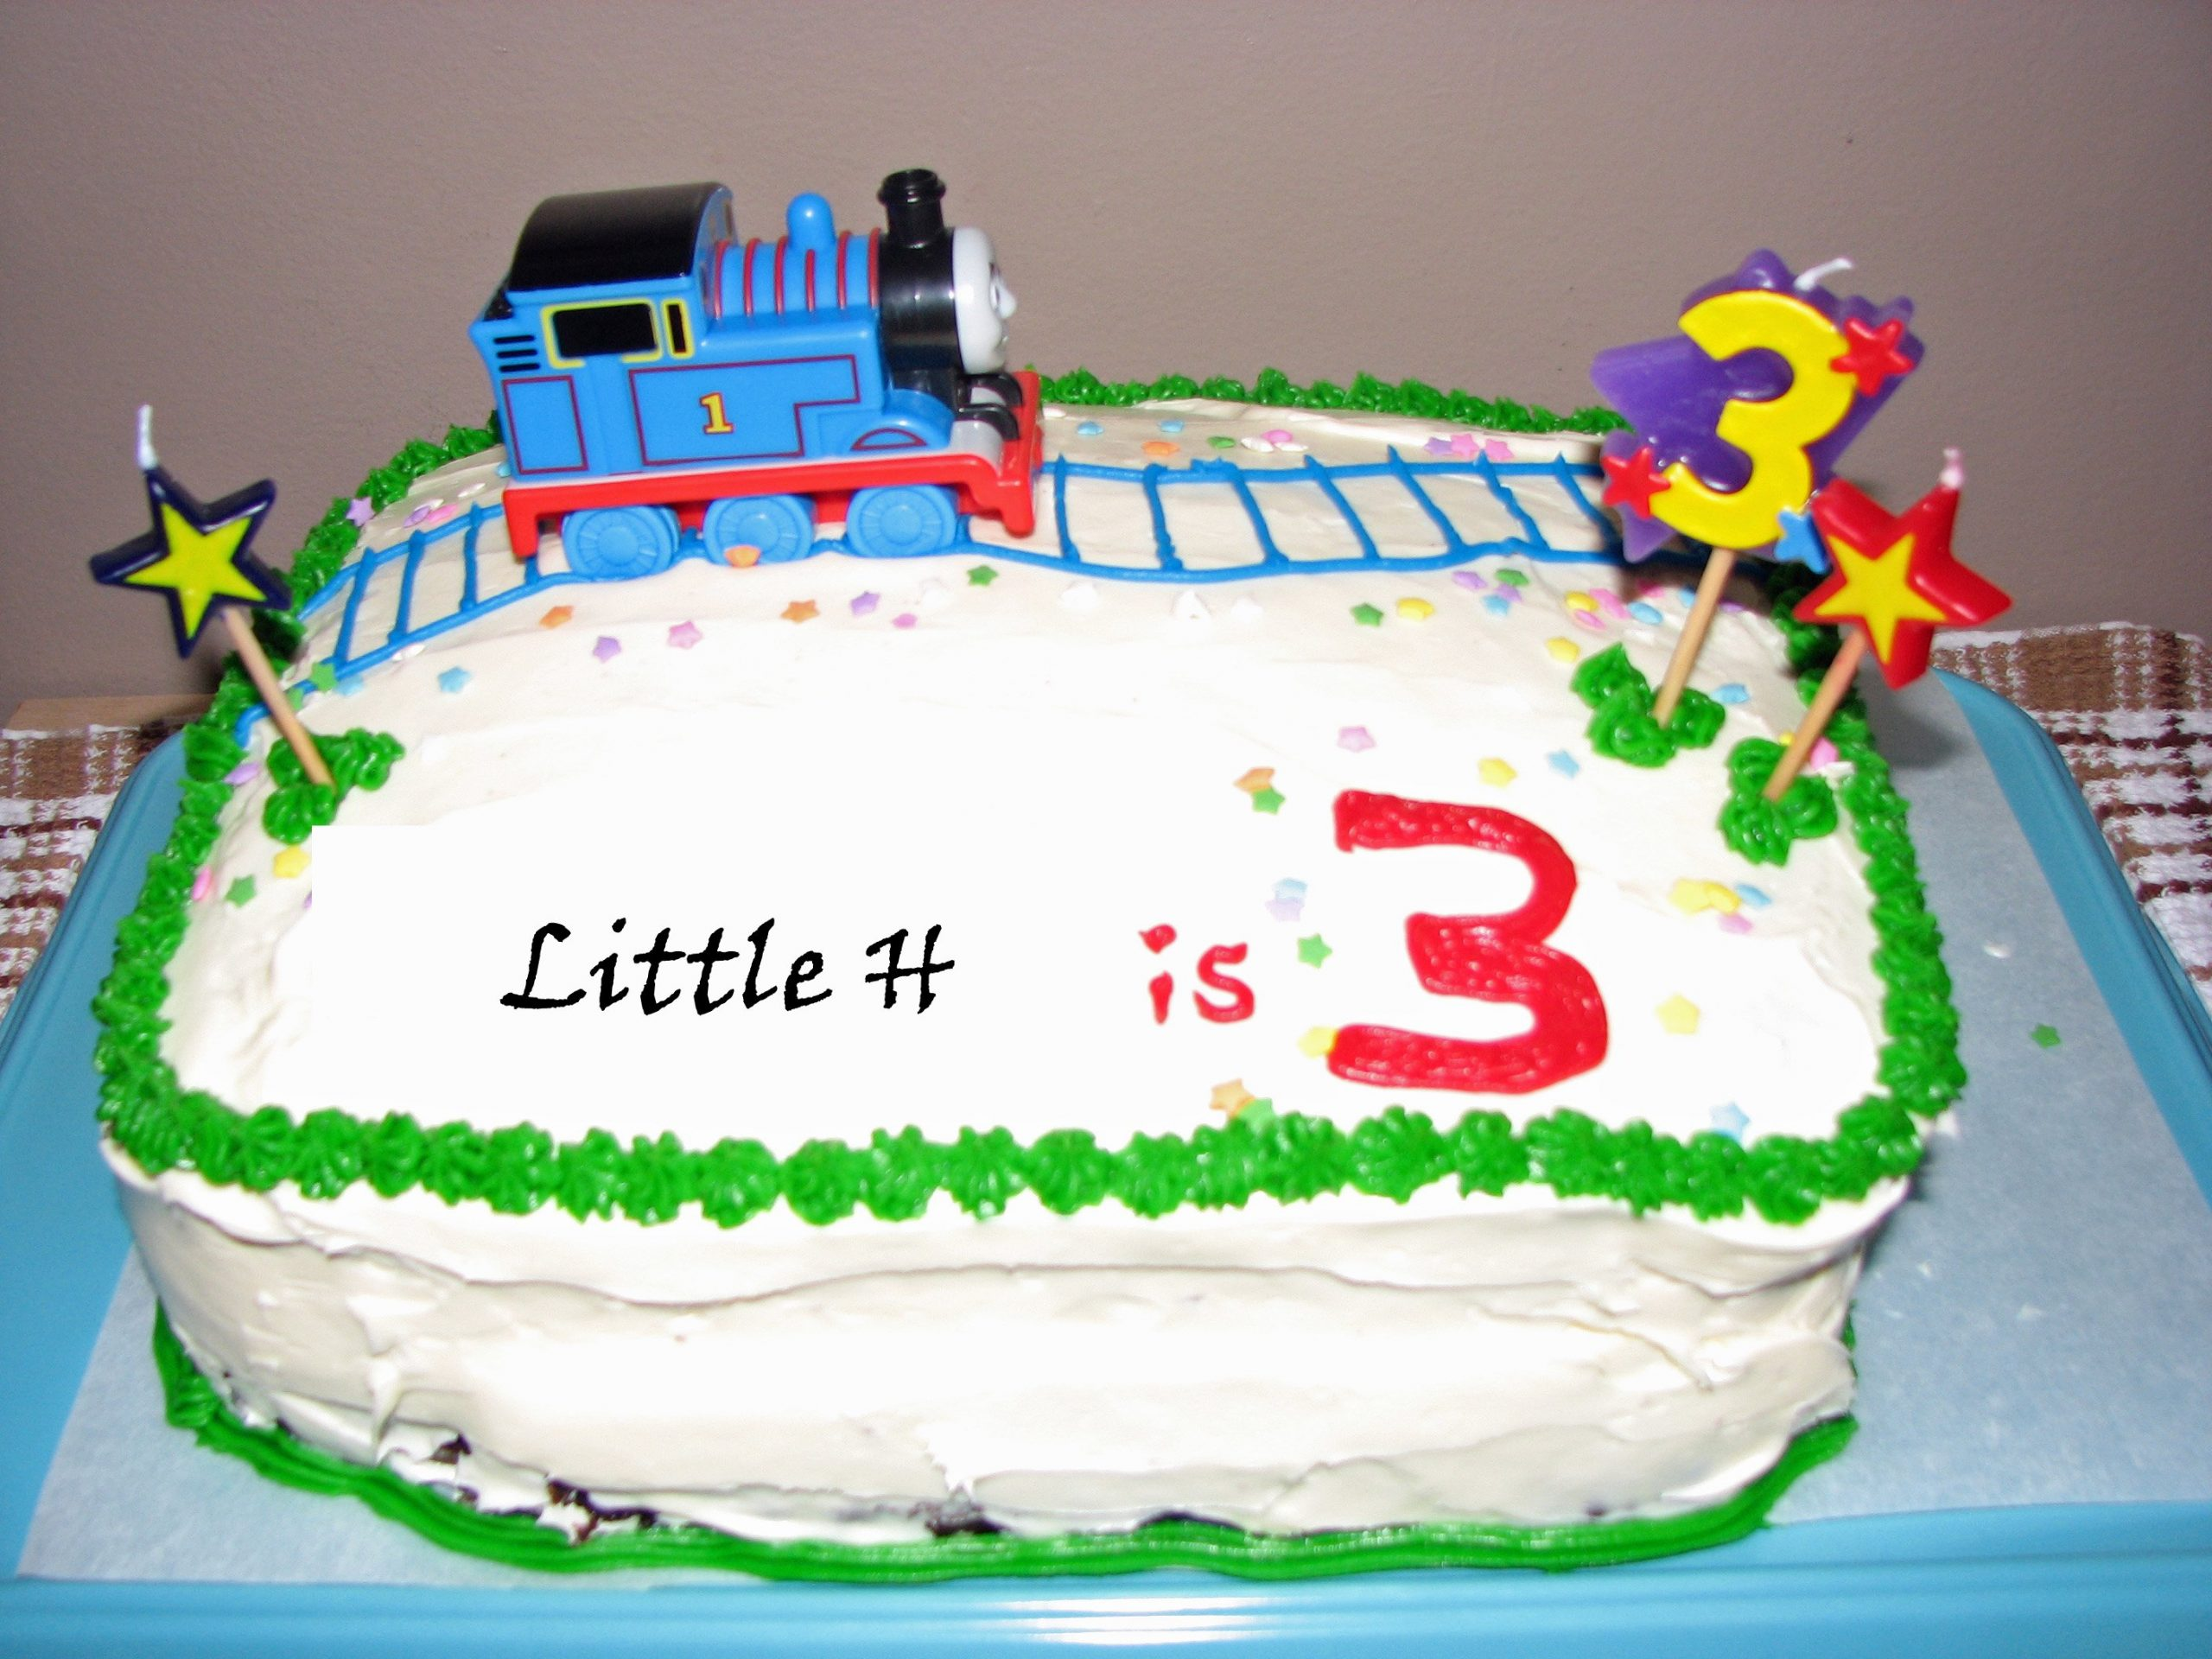 Cake Images Of Thomas The Train : How to Not Make a Thomas the Train Cake